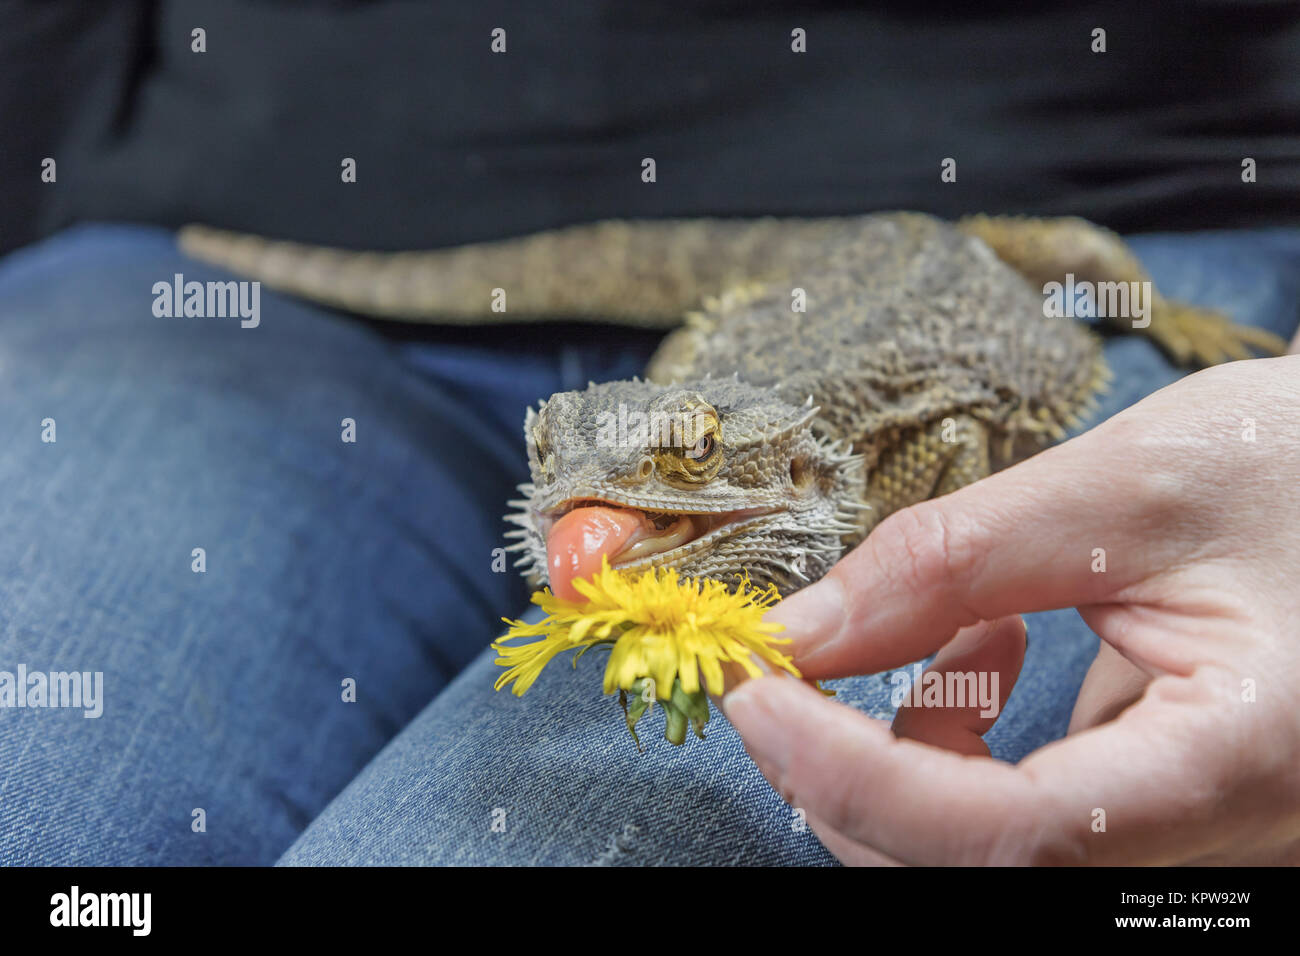 Agama with a protruding tongue is eating dandelion Stock Photo